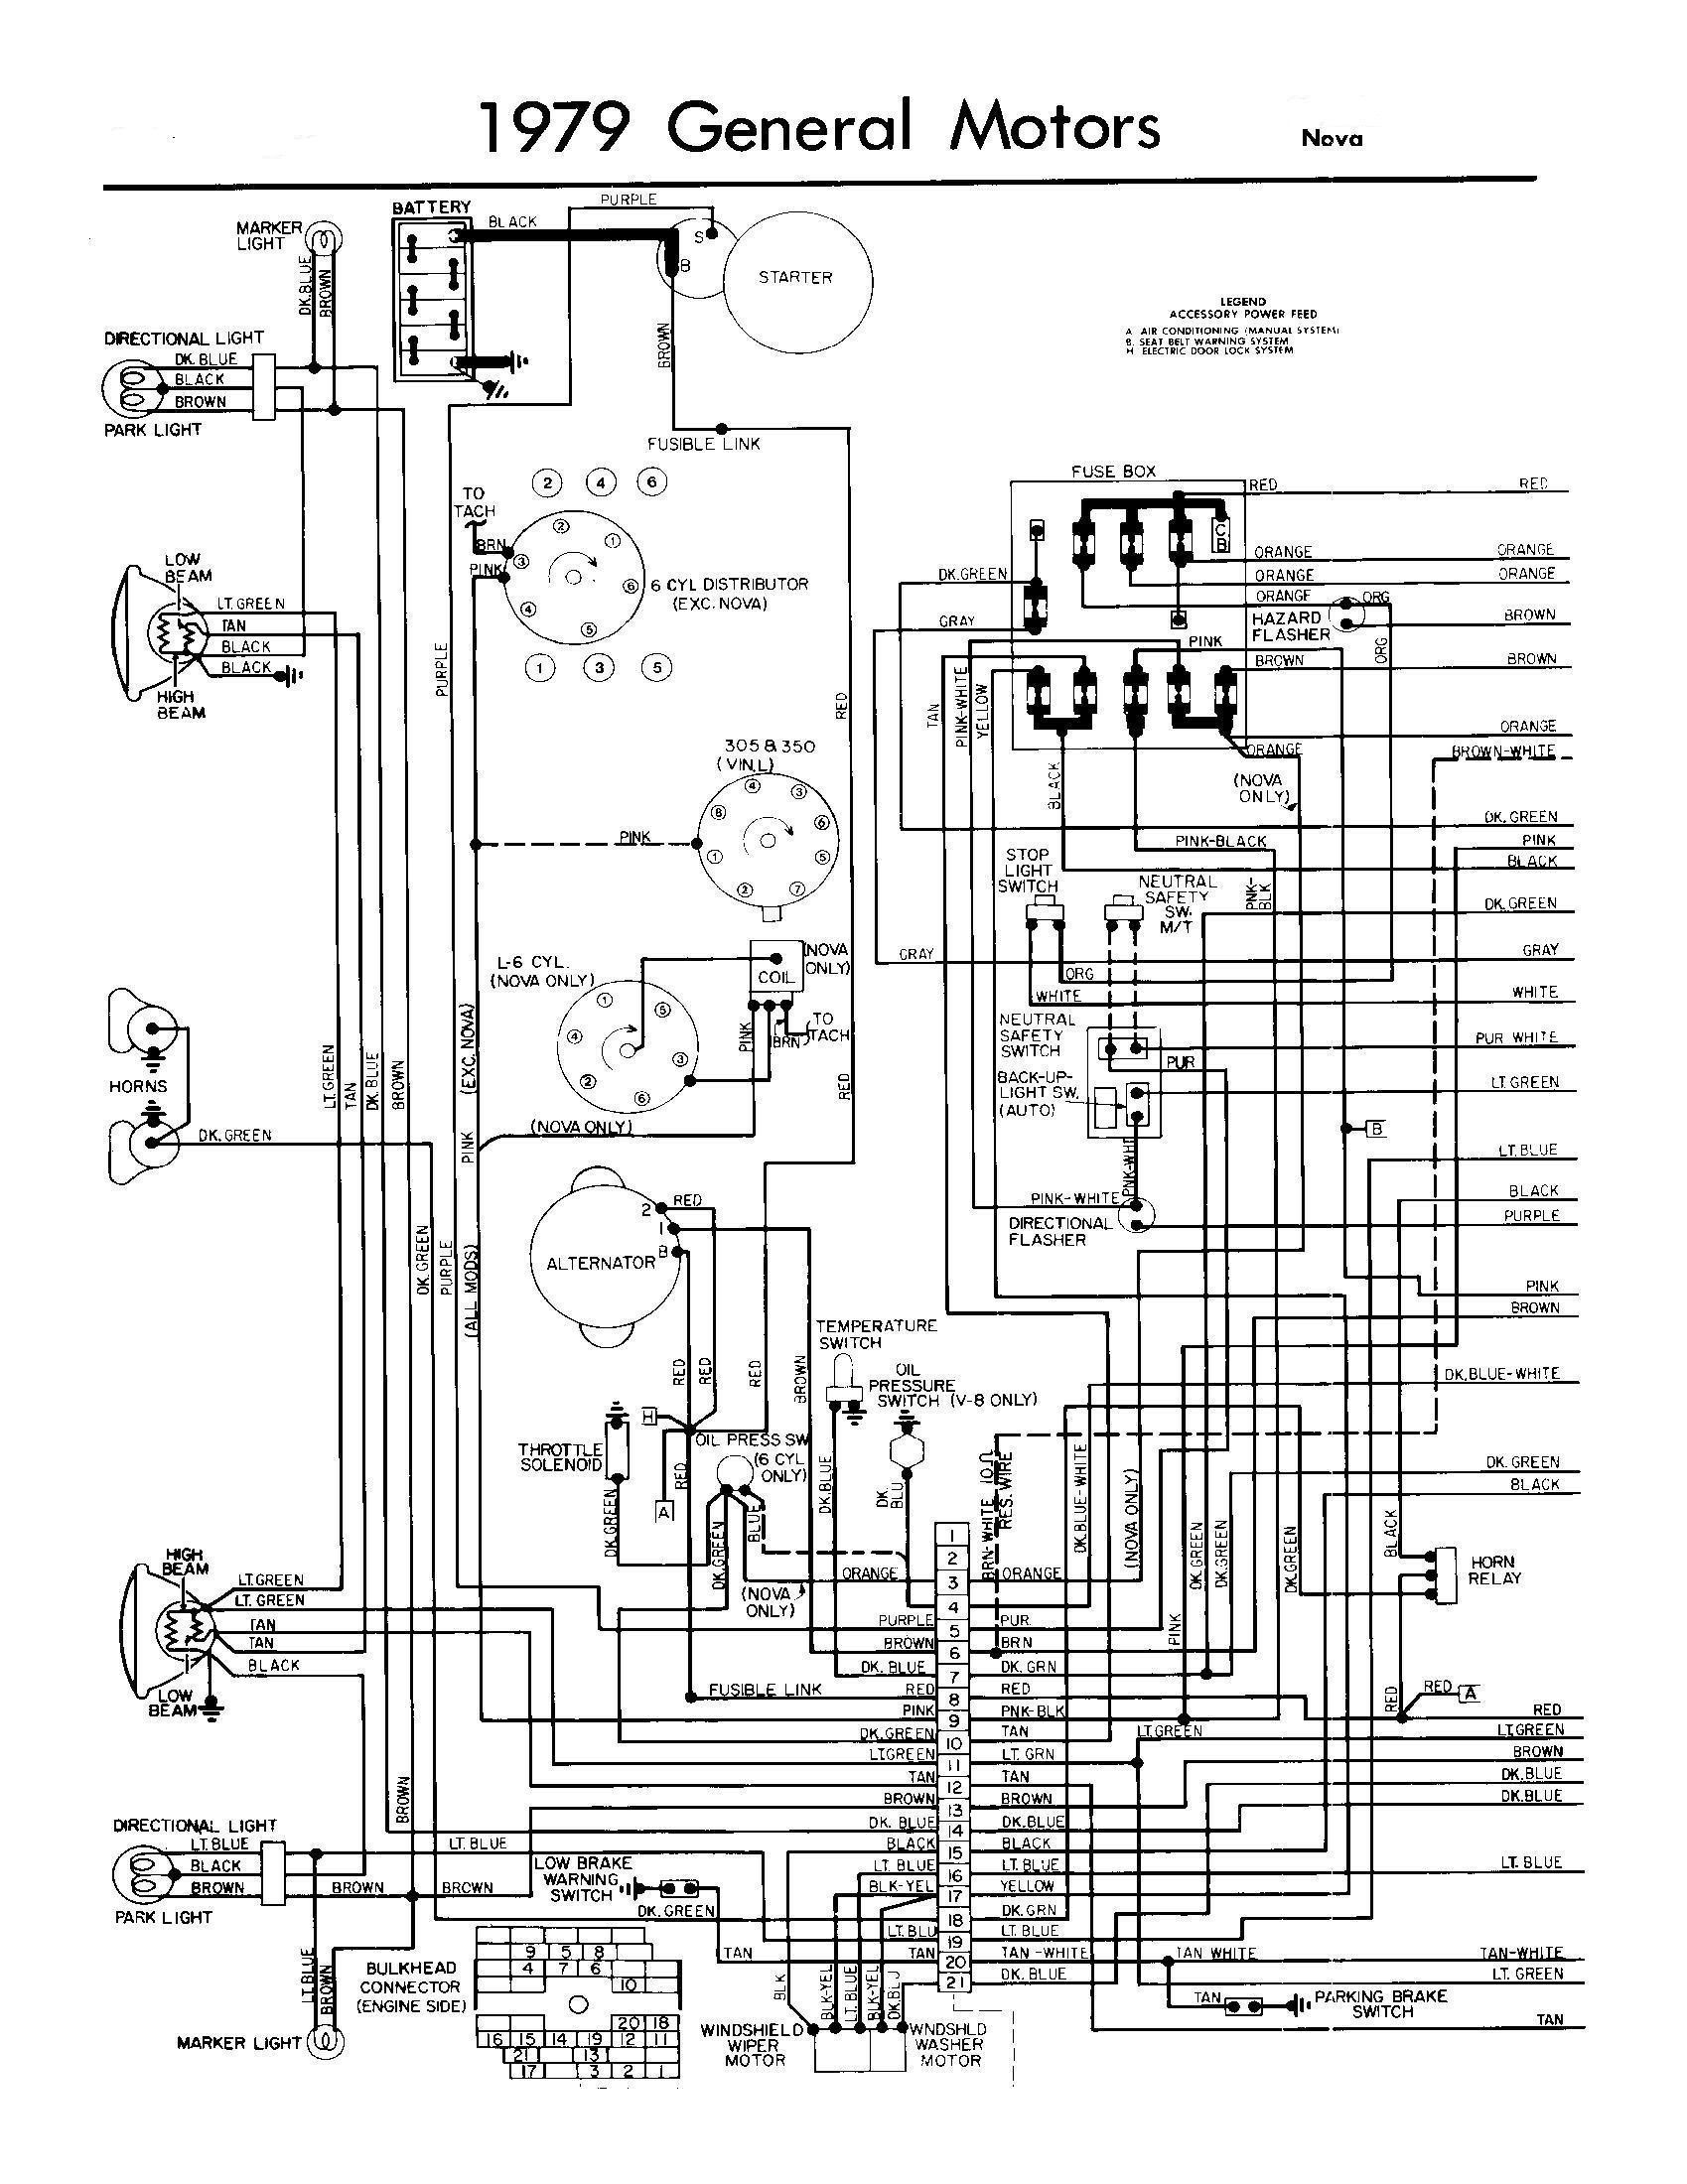 Diagram In Pictures Database 2002 Club Car Battery Wiring Diagram Free Download Just Download Or Read Free Download Diagram Architects Onyxum Com